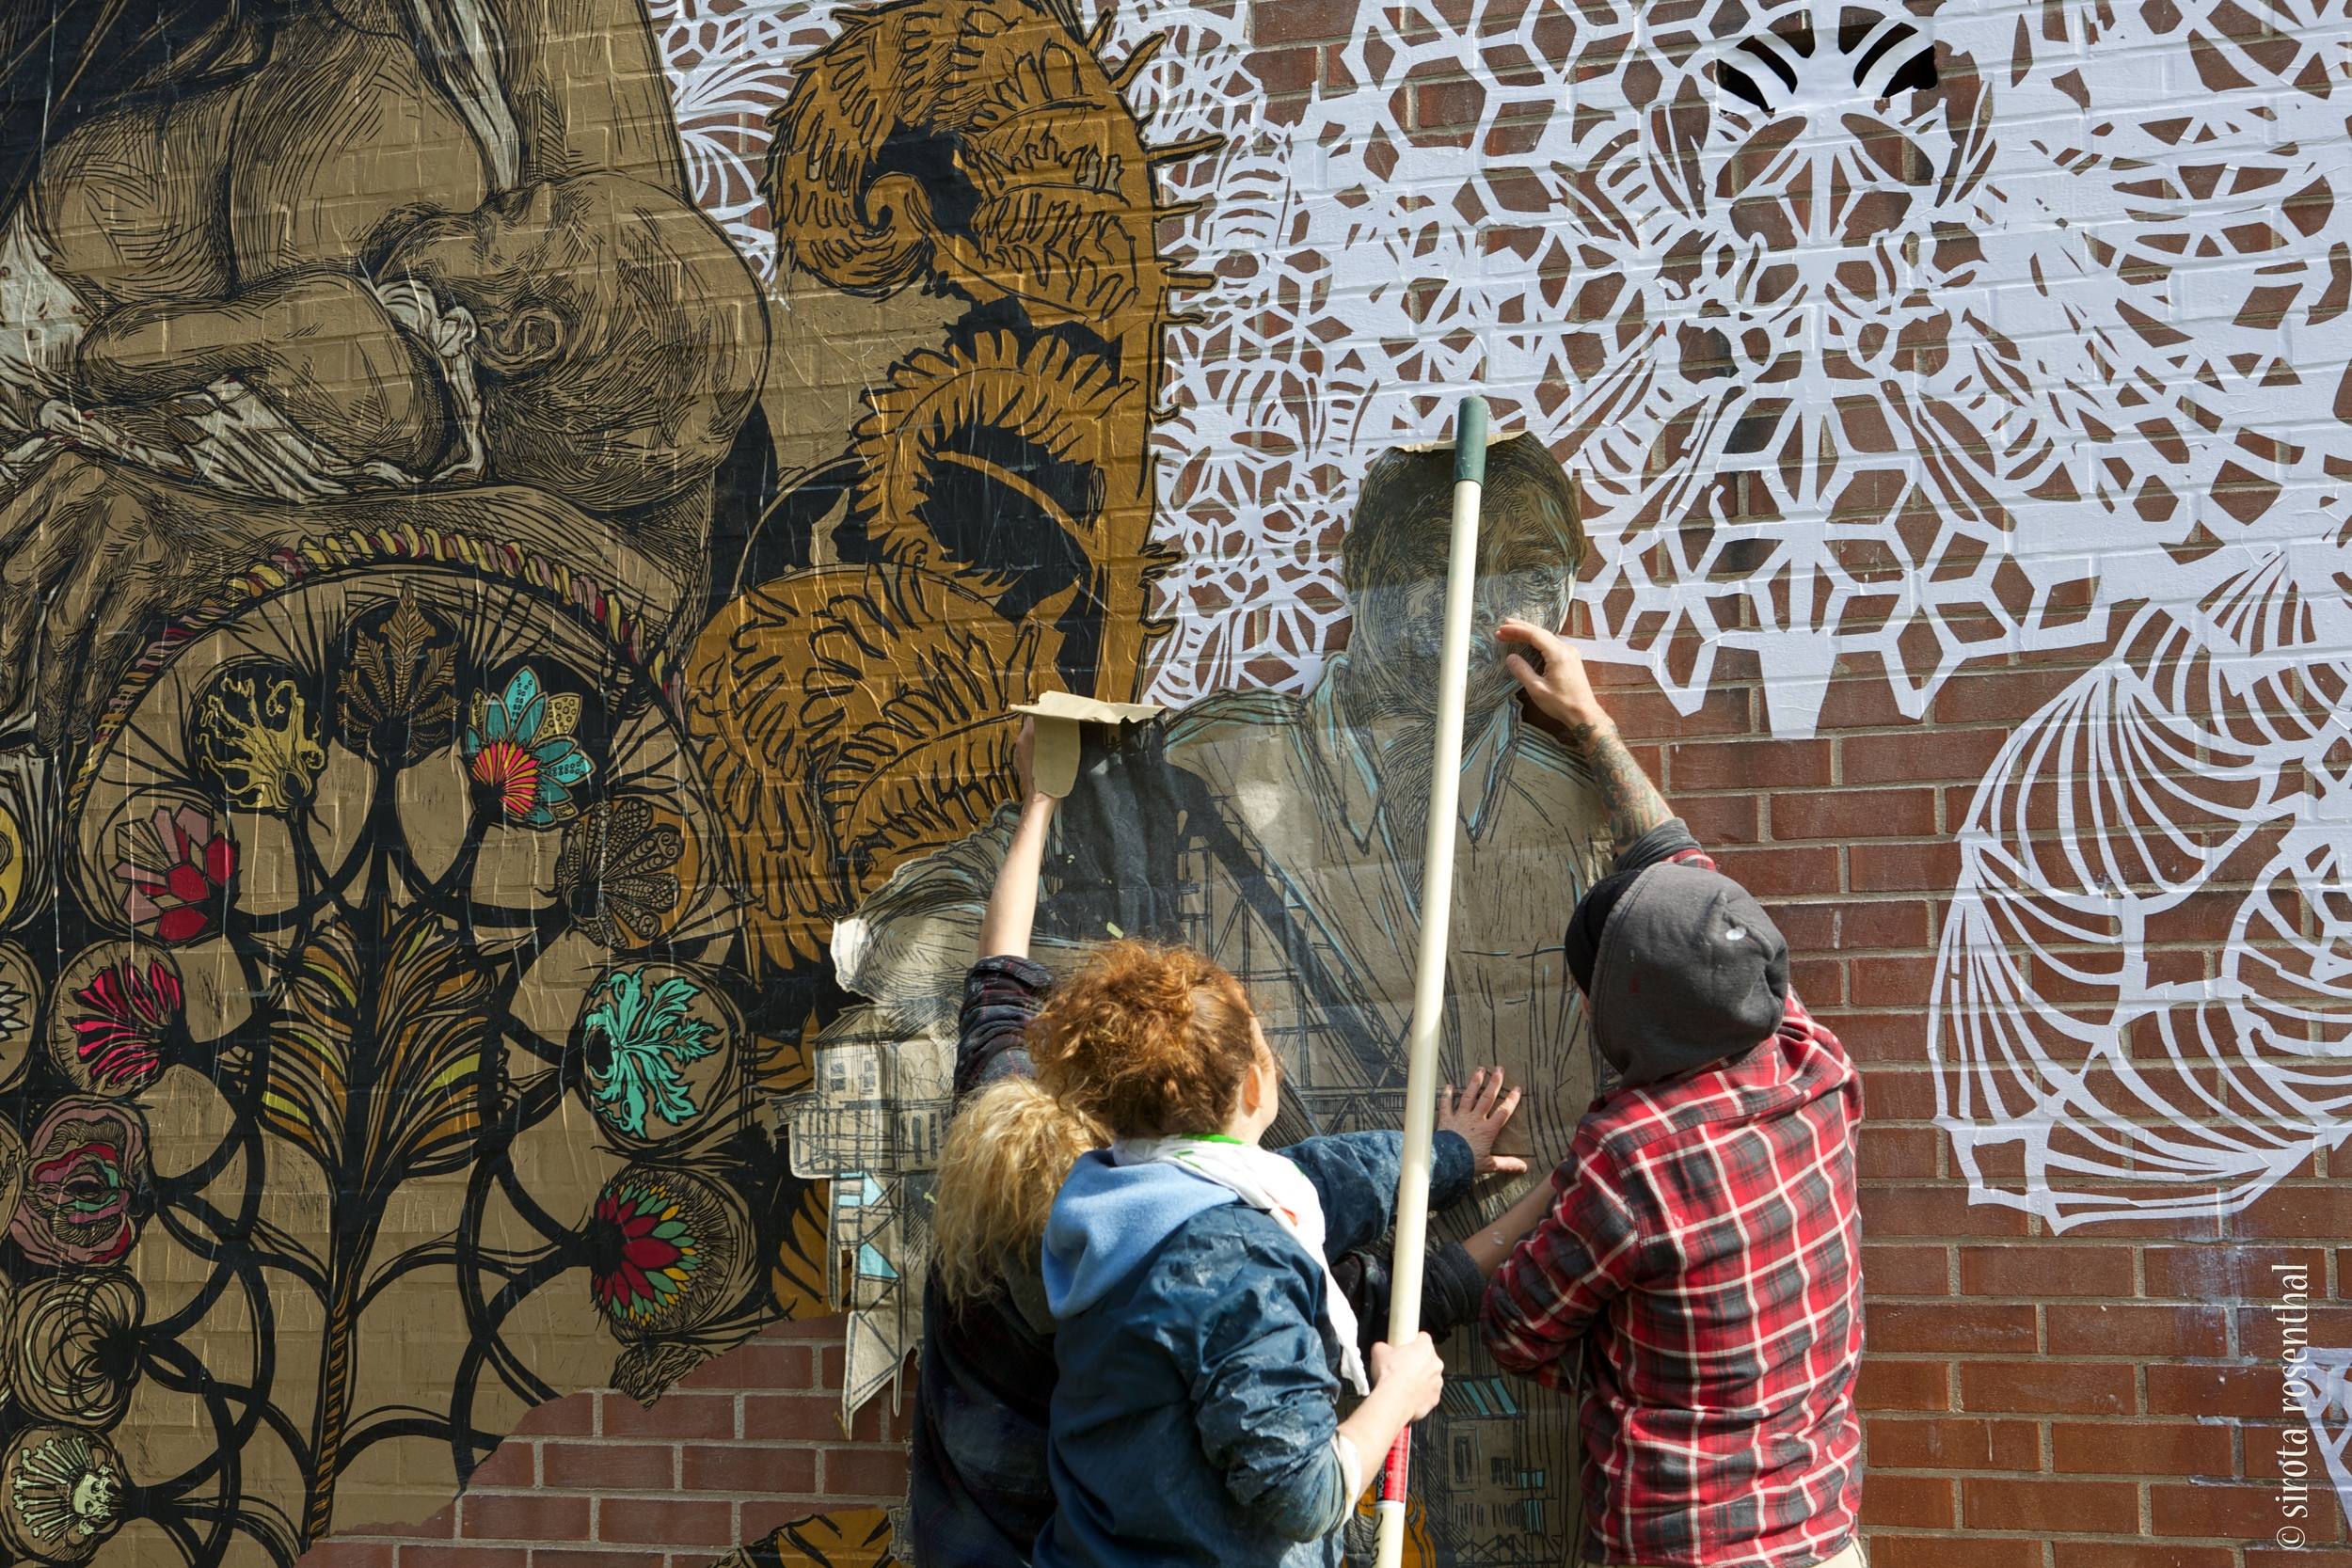 Artist Swoon working in New Haven